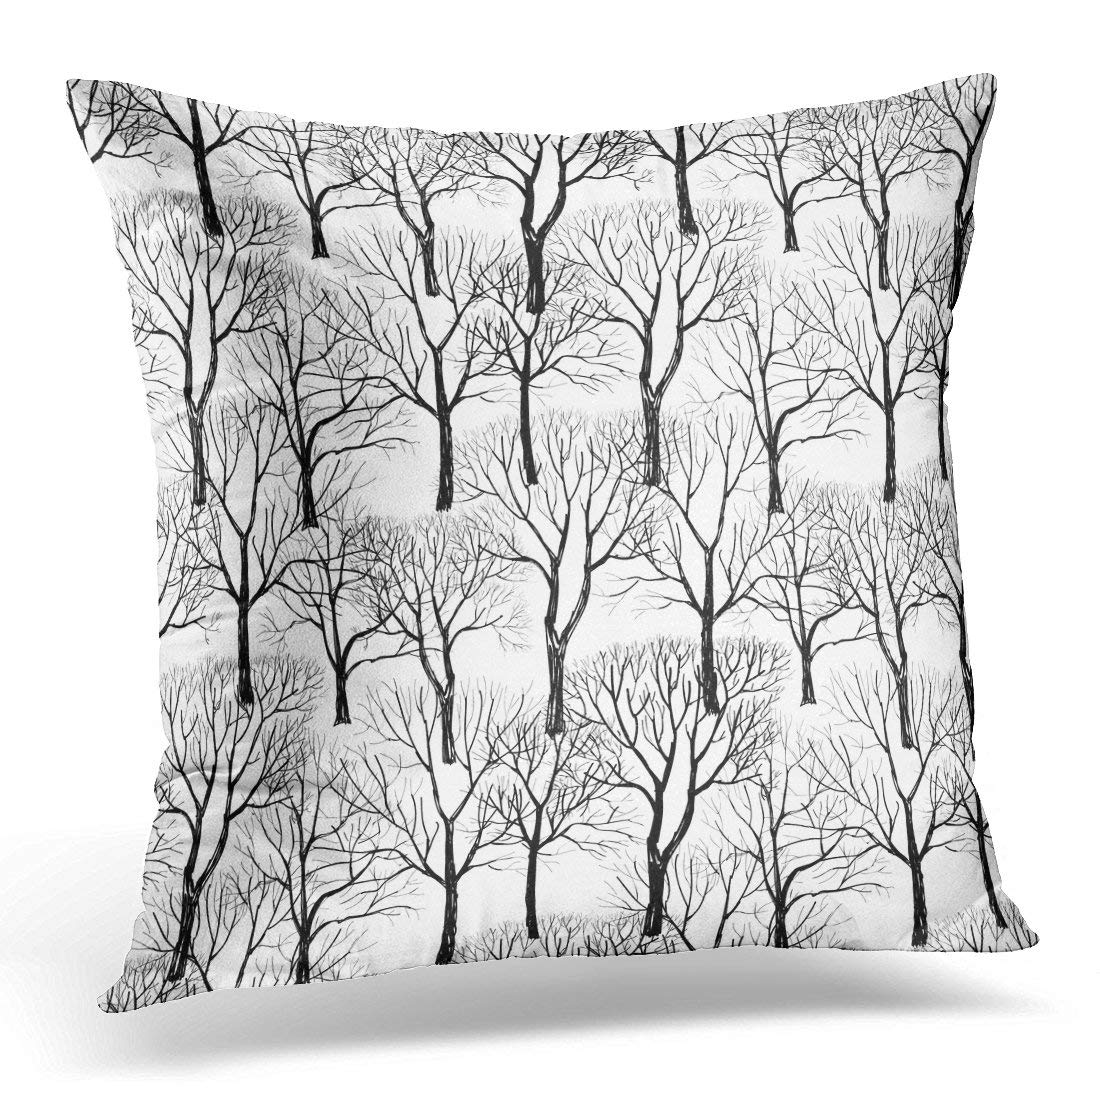 USART Black Winter Tree Without Leaves White Branches Plant Forest Branch Pillows case 20x20 Inches Home Decor Sofa Cushion Cover